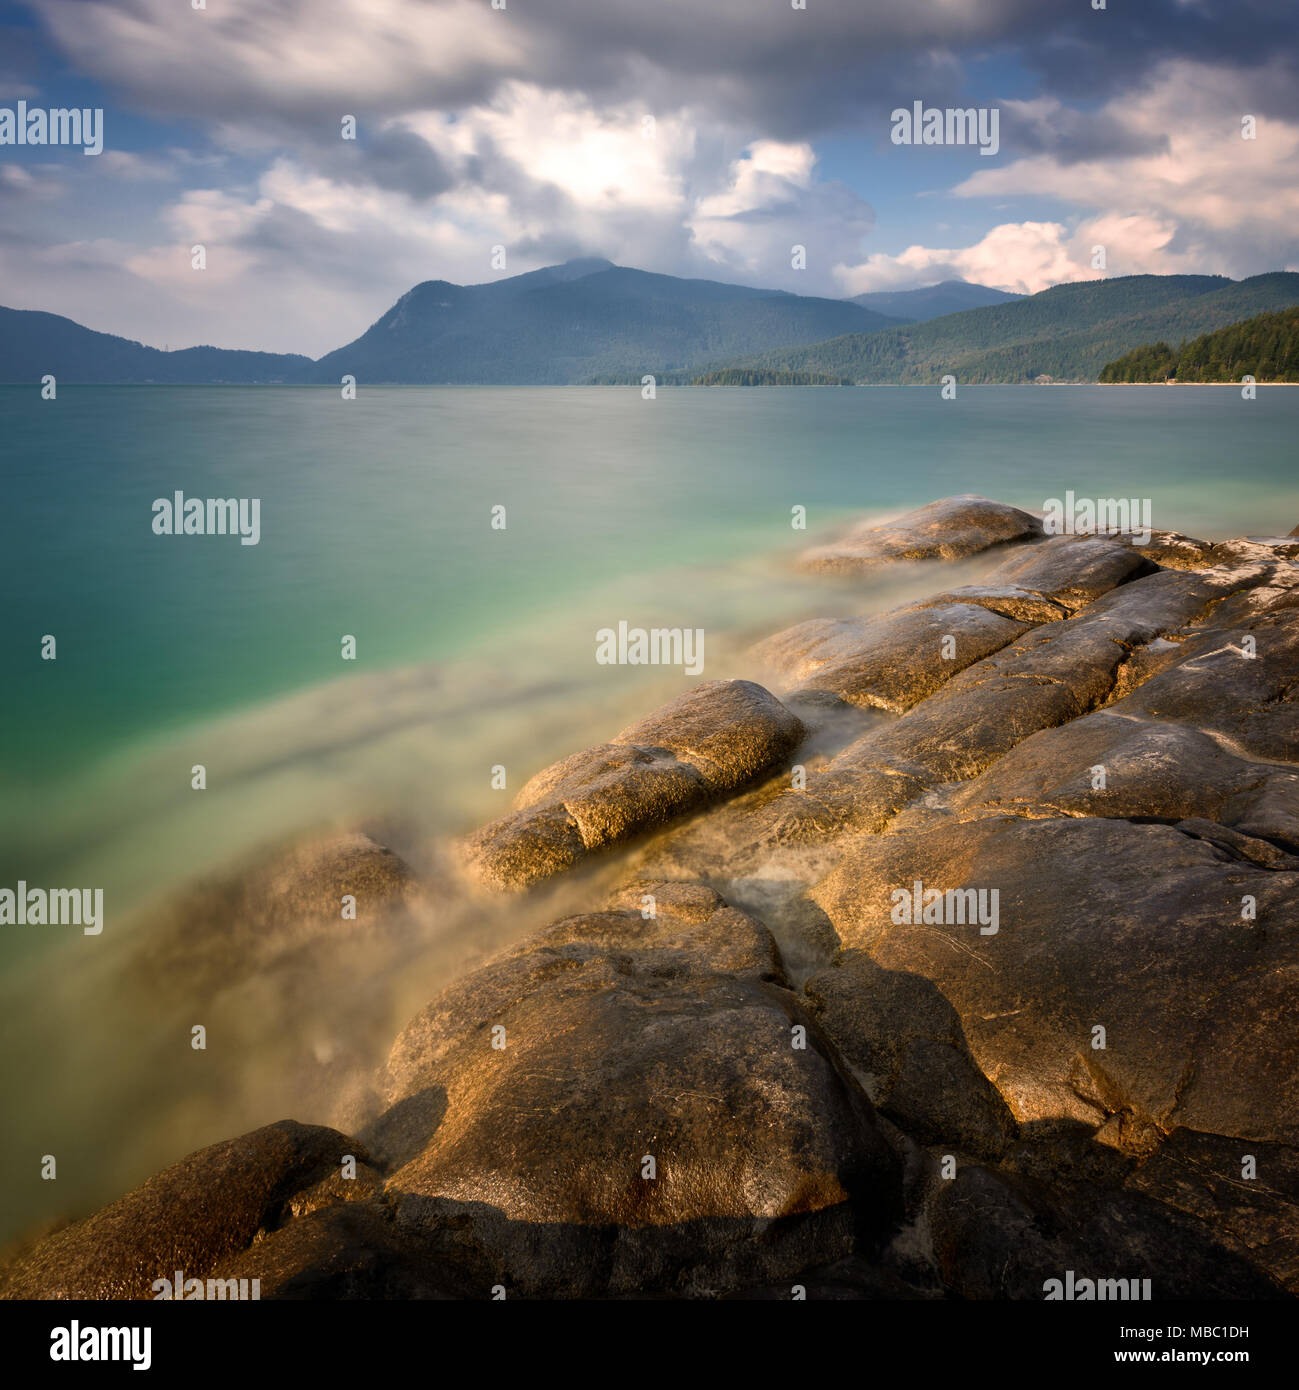 Amazing autumn scenery ar Walchensee lake. Calm water with beach rocks and heavy rainy clouds over alpine peaks. Walchensee, Bavaria, Germany. - Stock Image